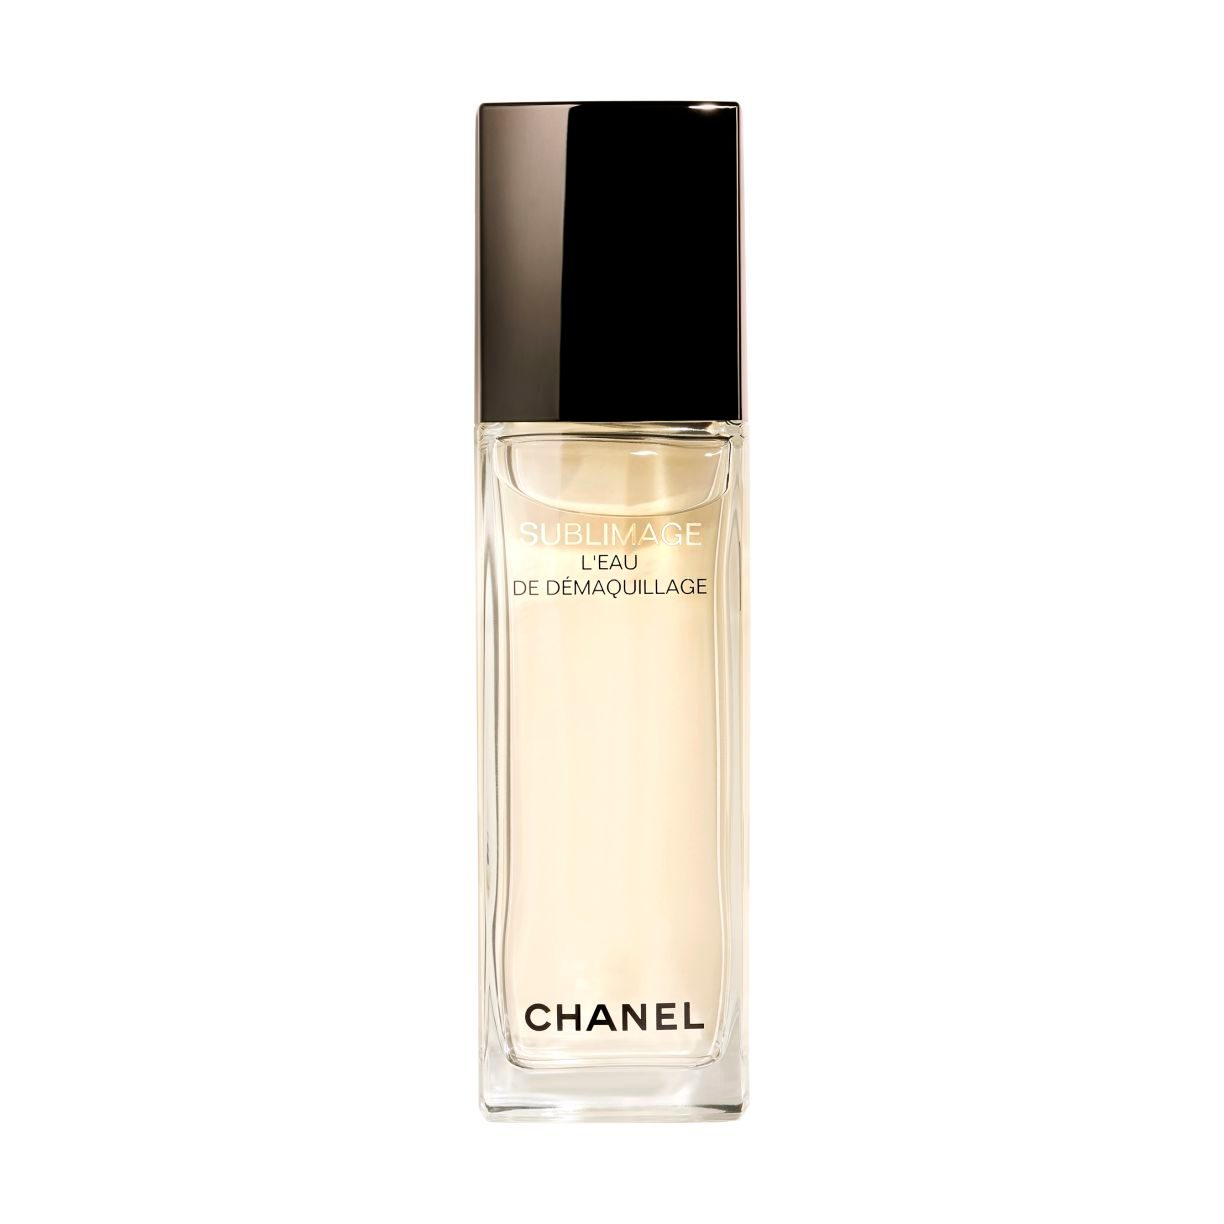 SUBLIMAGE L'EAU DE DÉMAQUILLAGE REFRESHING AND RADIANCE-REVEALING CLEANSER WATER 125ml